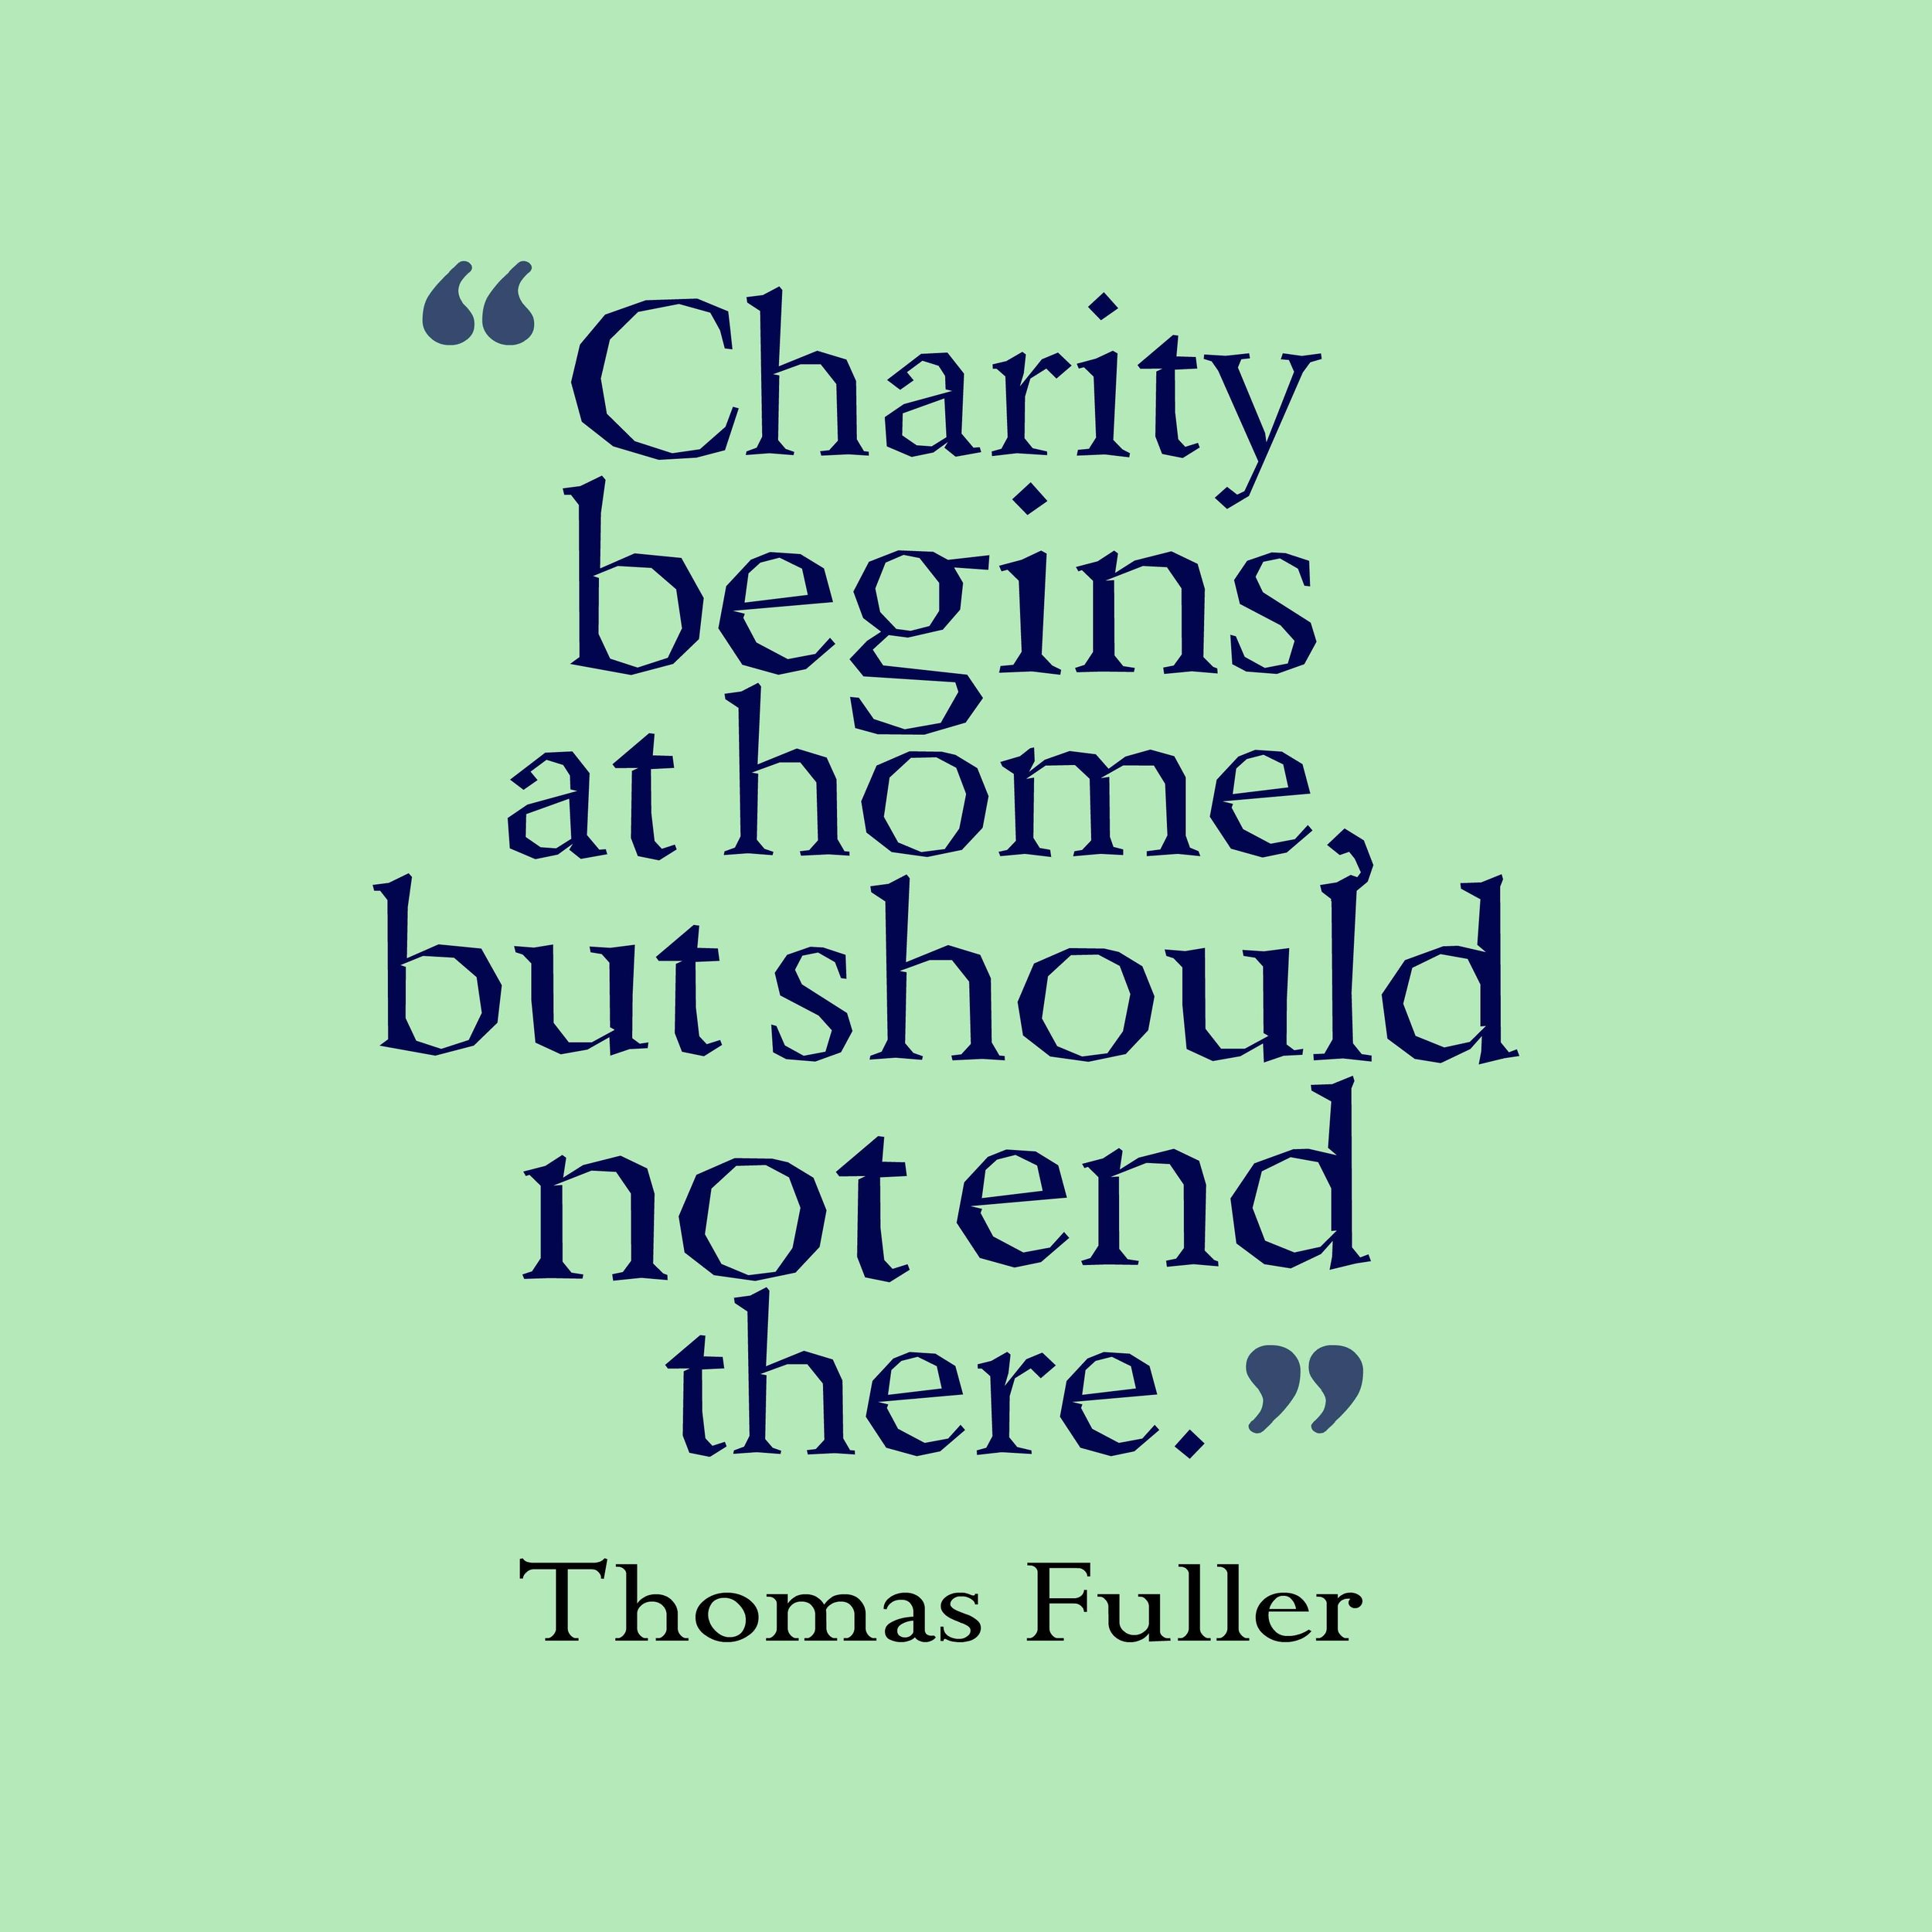 charity-quote-by-thomas-fuller-cahrity-begins-at-home-but-should-not-end-there.jpg